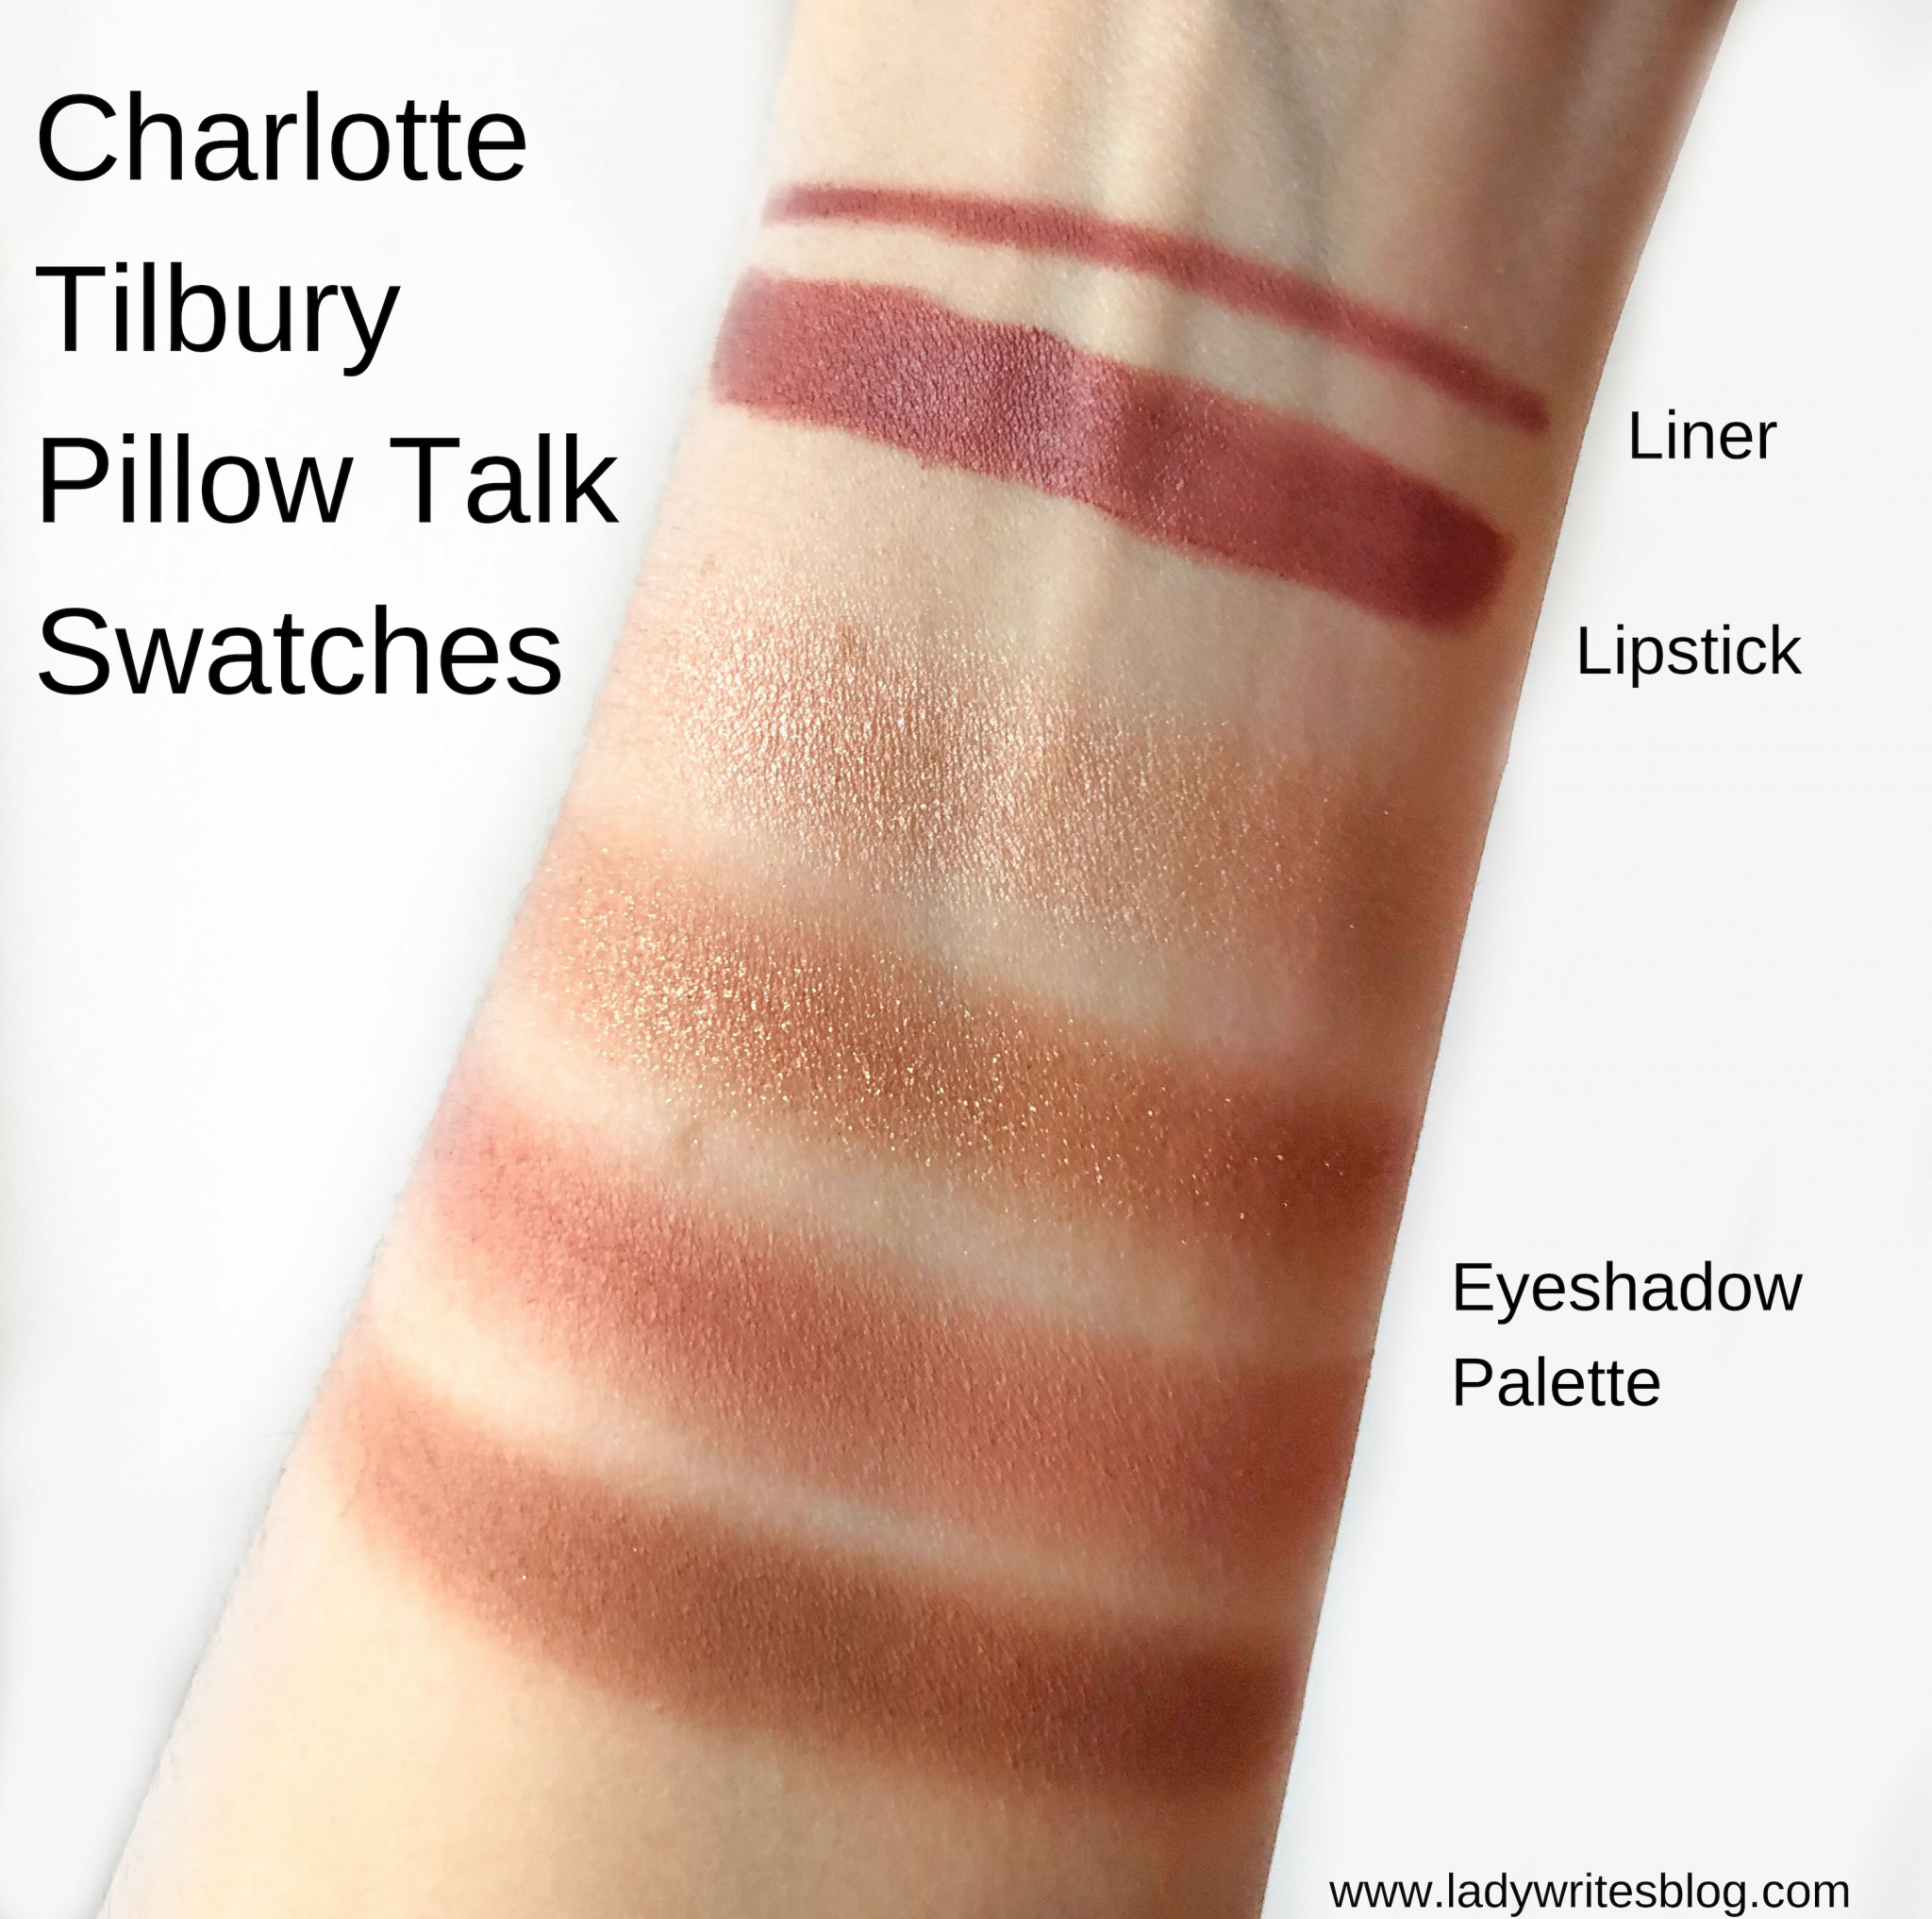 Charlotte Tilbury Pillow Talk Swatches